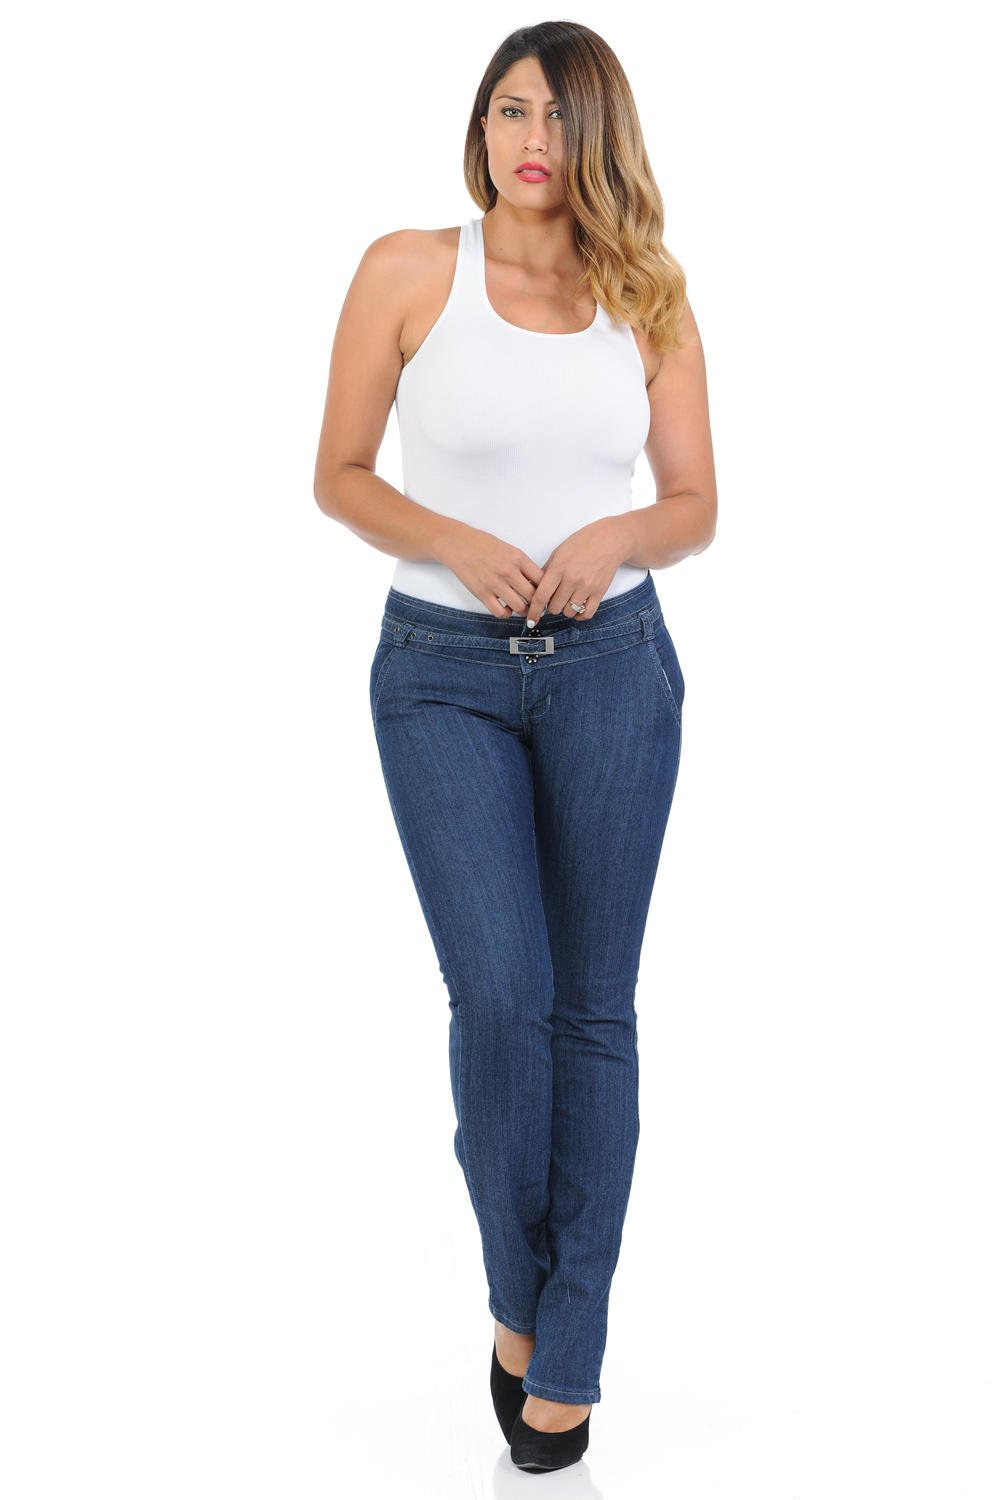 Pasion Women's Jeans · Push Up · Bootcut · Amazing Fit · Style B747-LW · Blue · Size 0